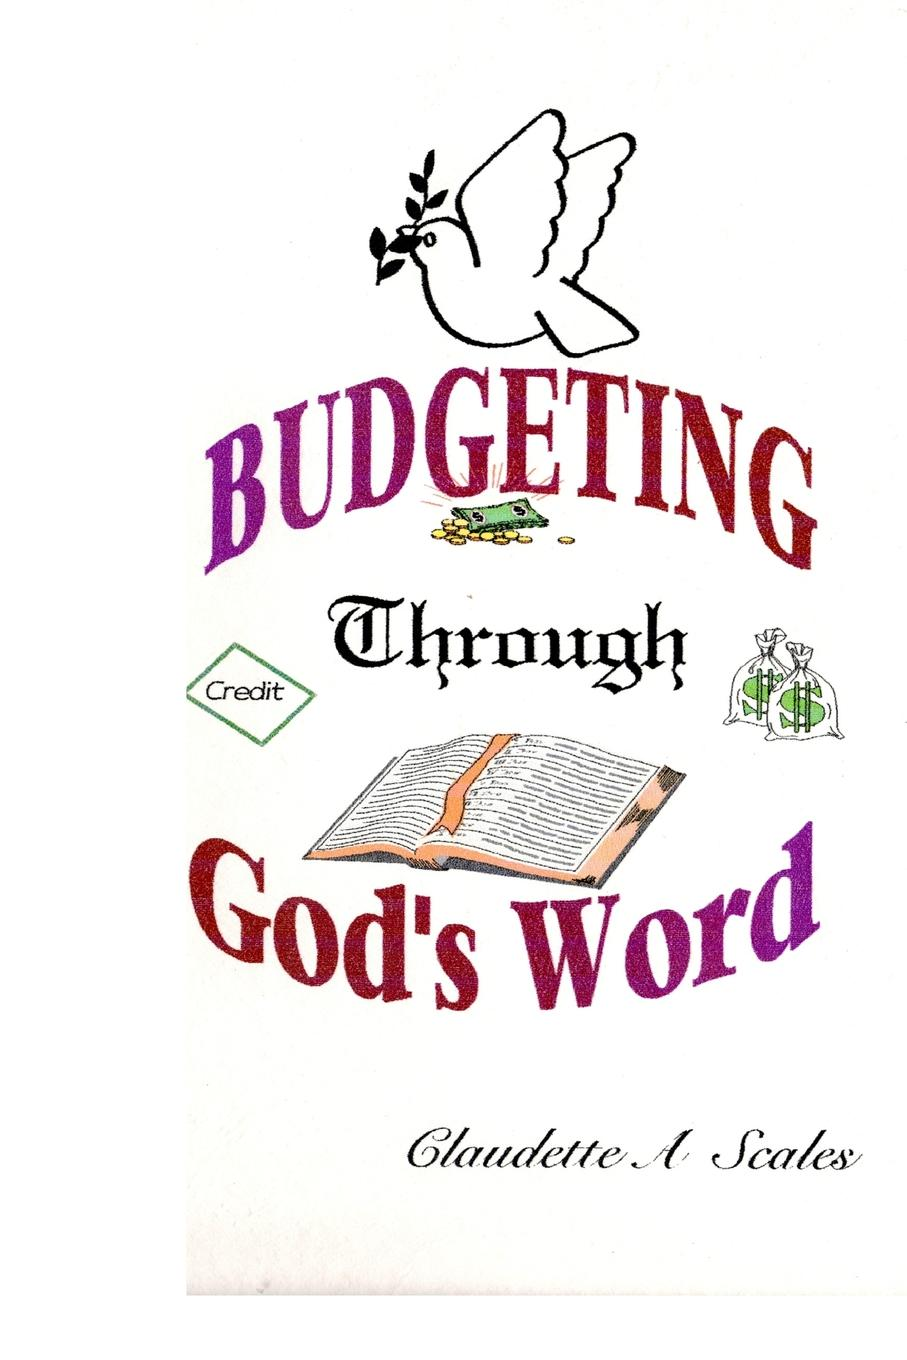 BUDGETING THROUGH GOD.S WORD This book encourages budgeting as a way of life. It encourages...